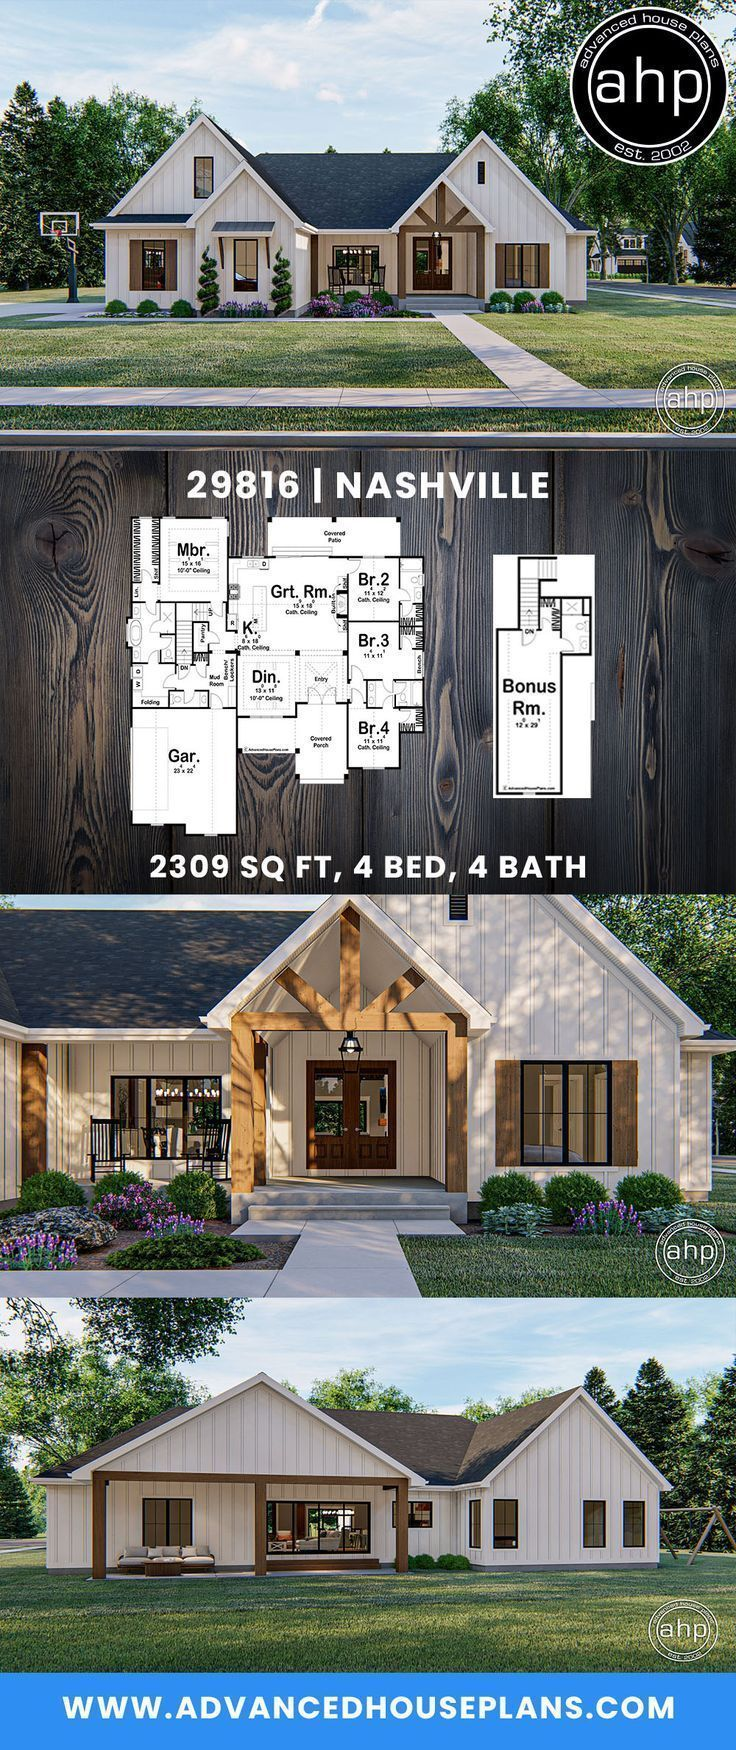 5 Simple Farmhouse Modern Floorplan Projects S Were Built They Could Be Made Of Stone Bric House Plans Farmhouse Farmhouse Style House Plans New House Plans